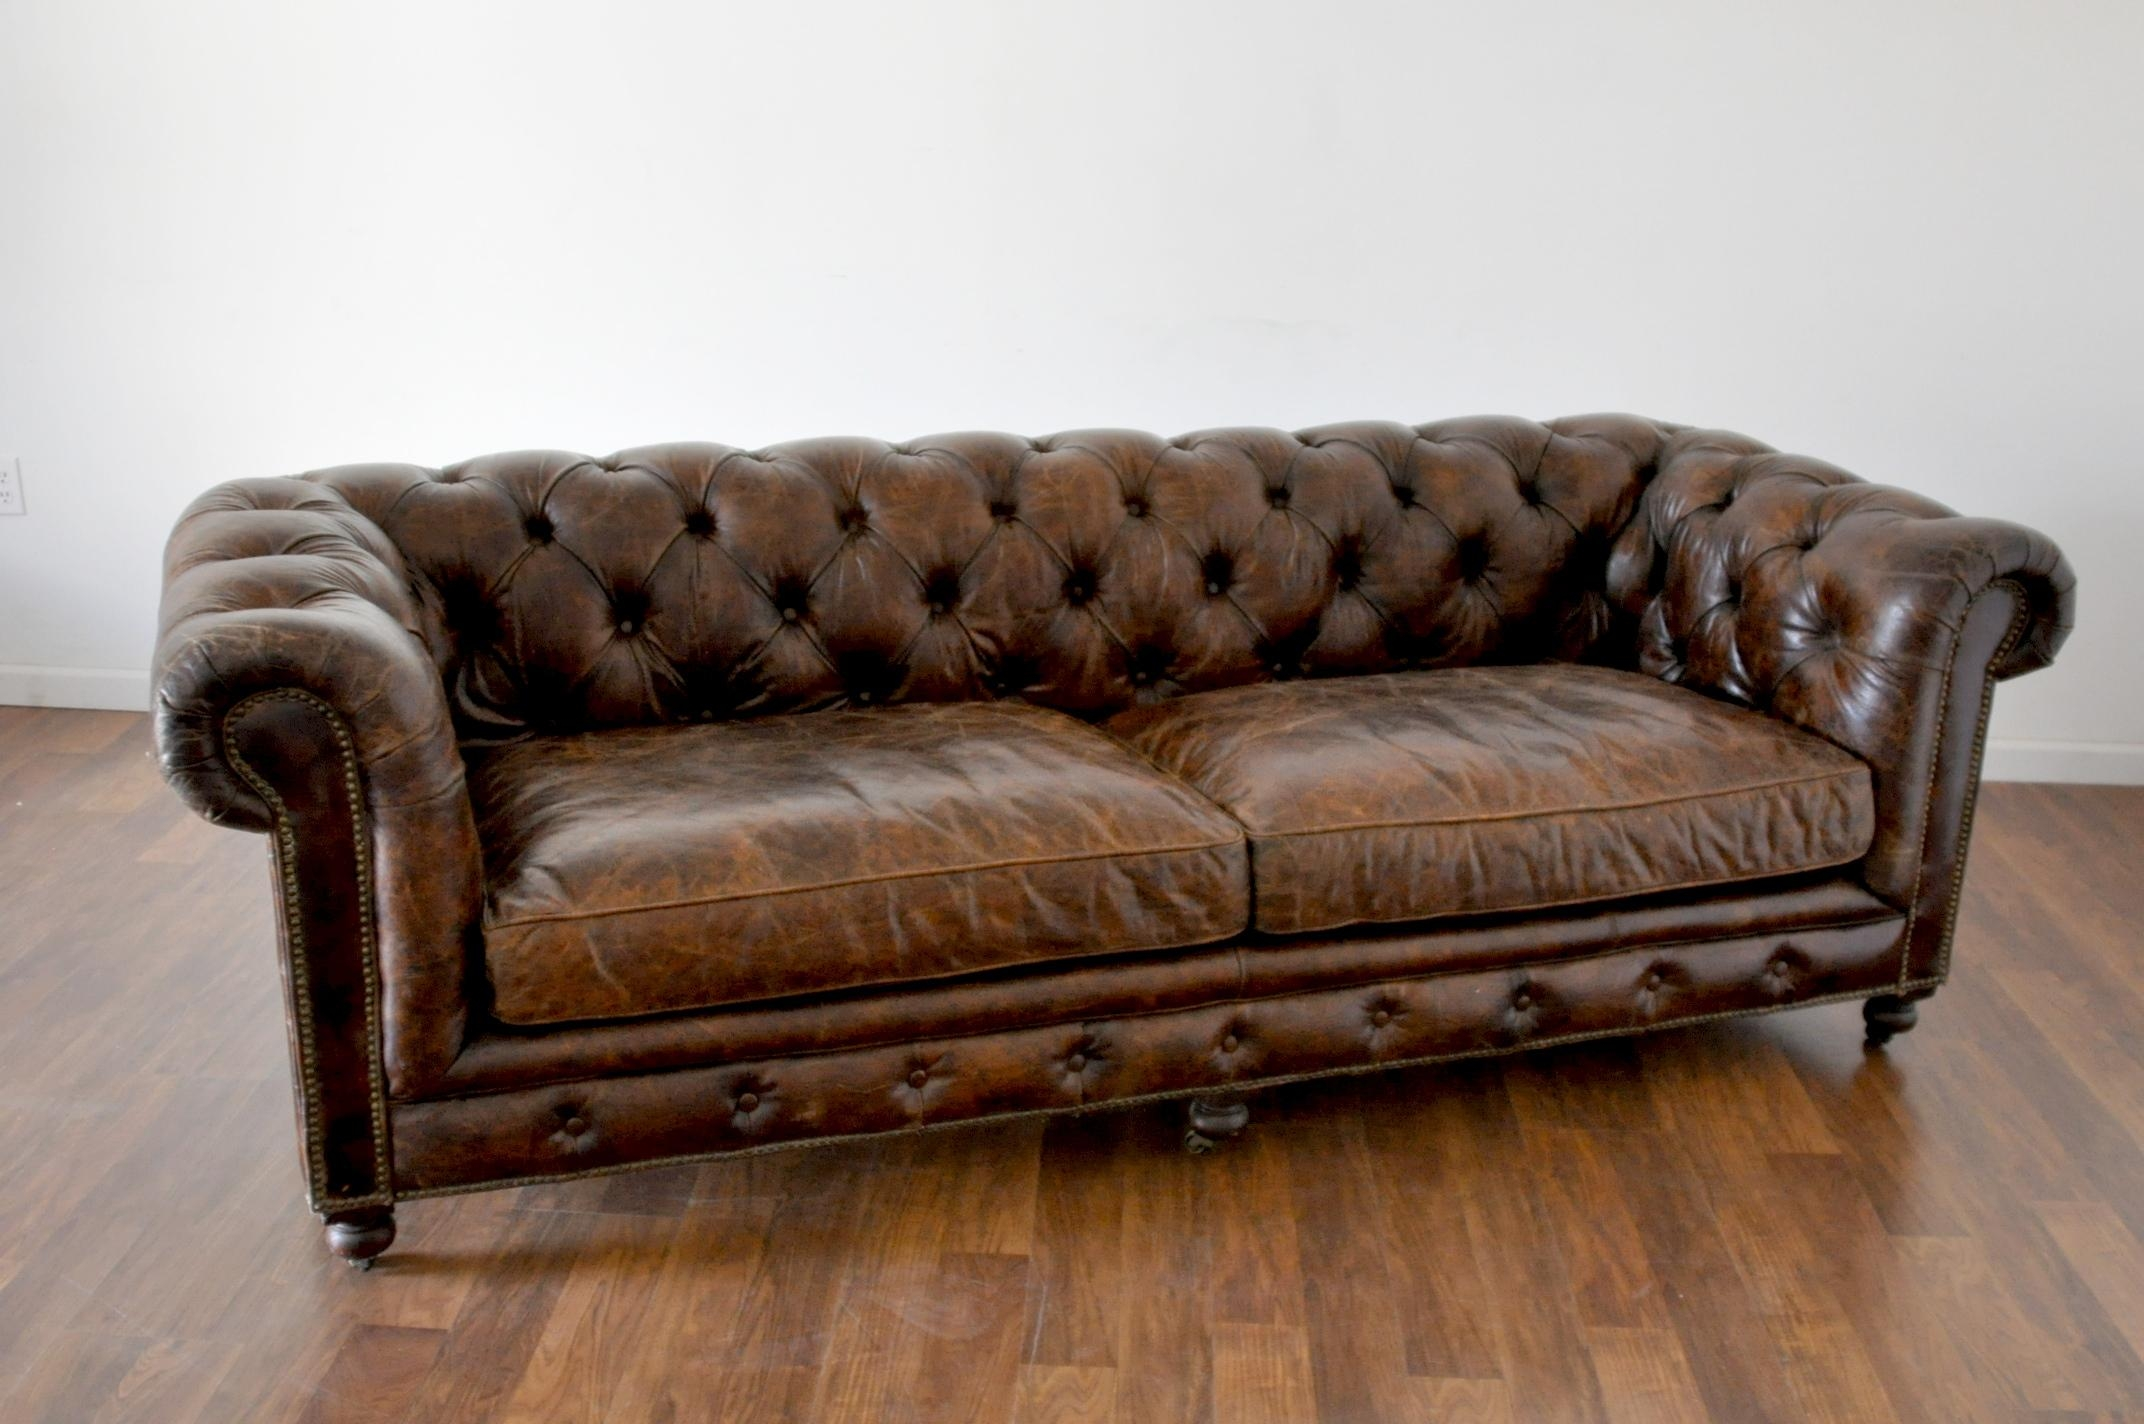 Sofas Center : Clifton Leather Tufted Sofa Set Dillardstufted Regarding Brown Tufted Sofas (Image 14 of 20)